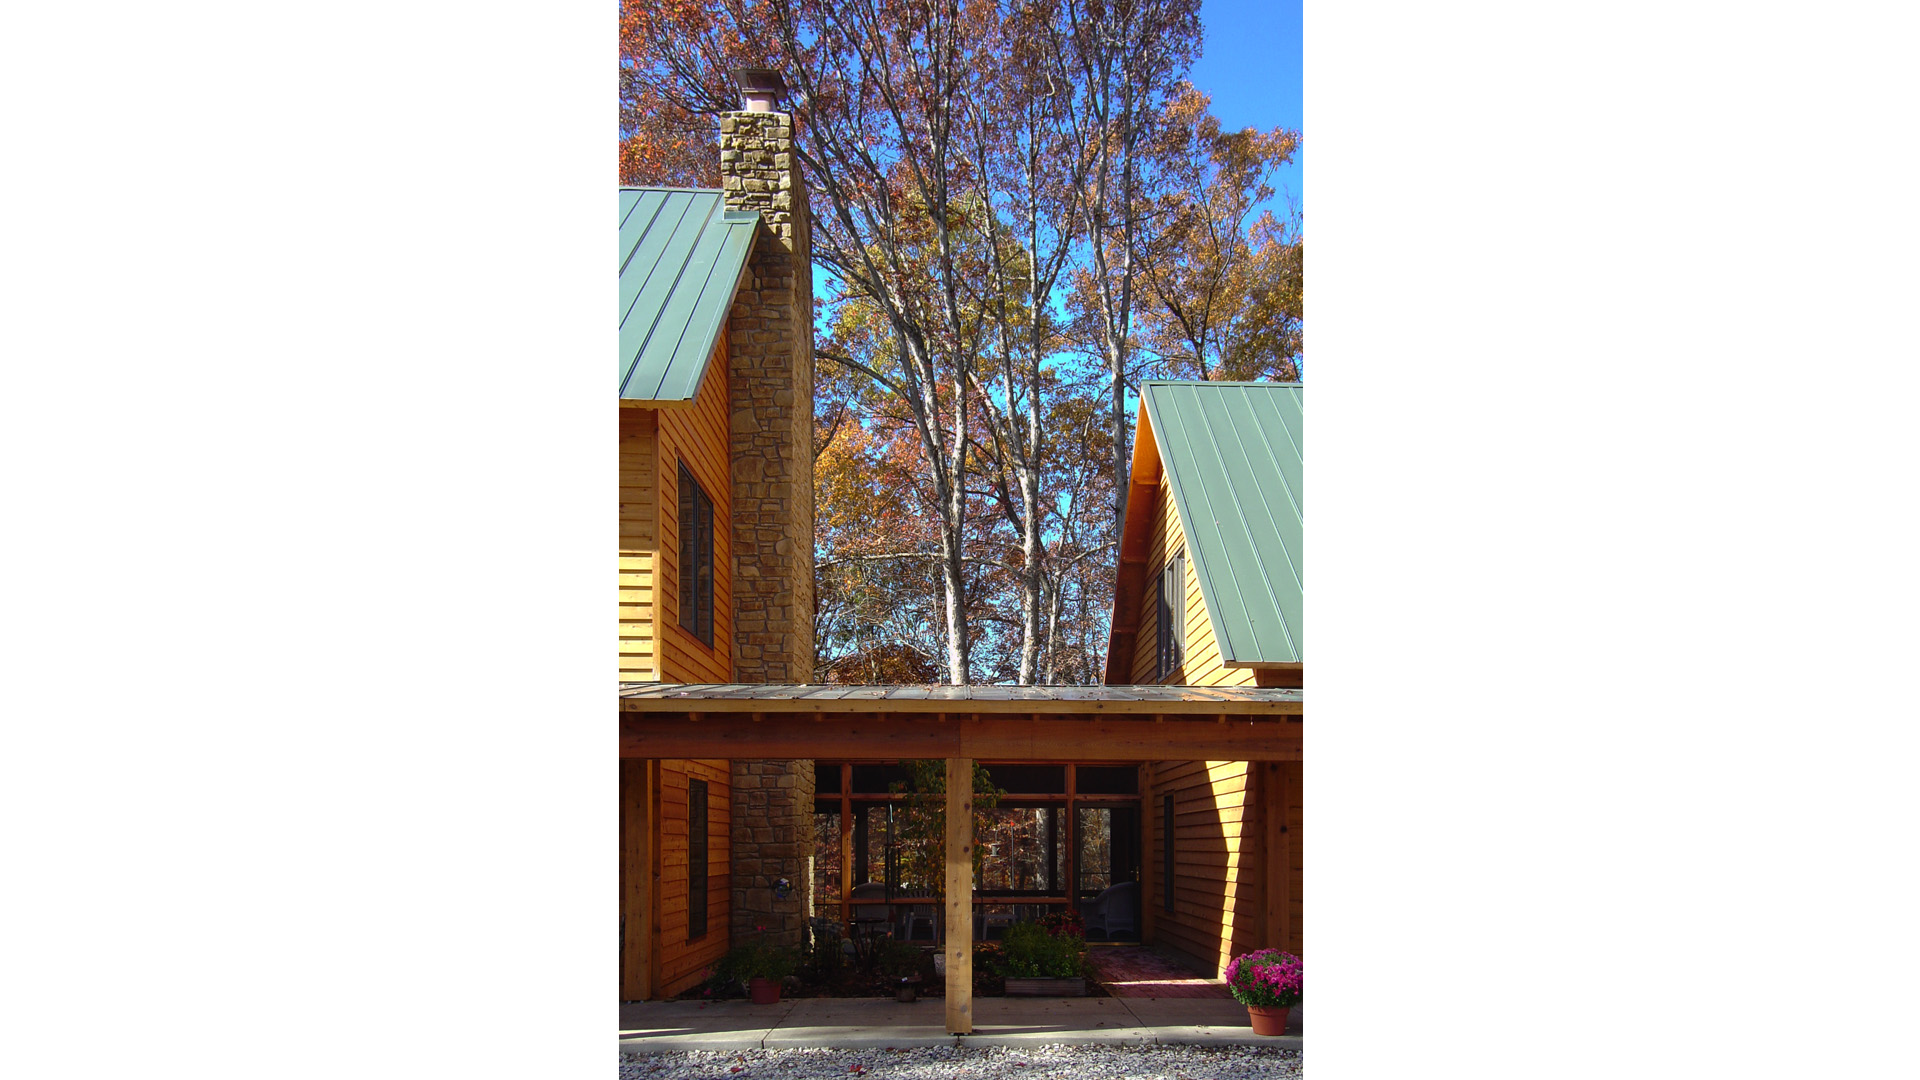 Nashville Cabin Retreat, Connector, HAUS Architecture, Christopher Short, Indianapolis Architect